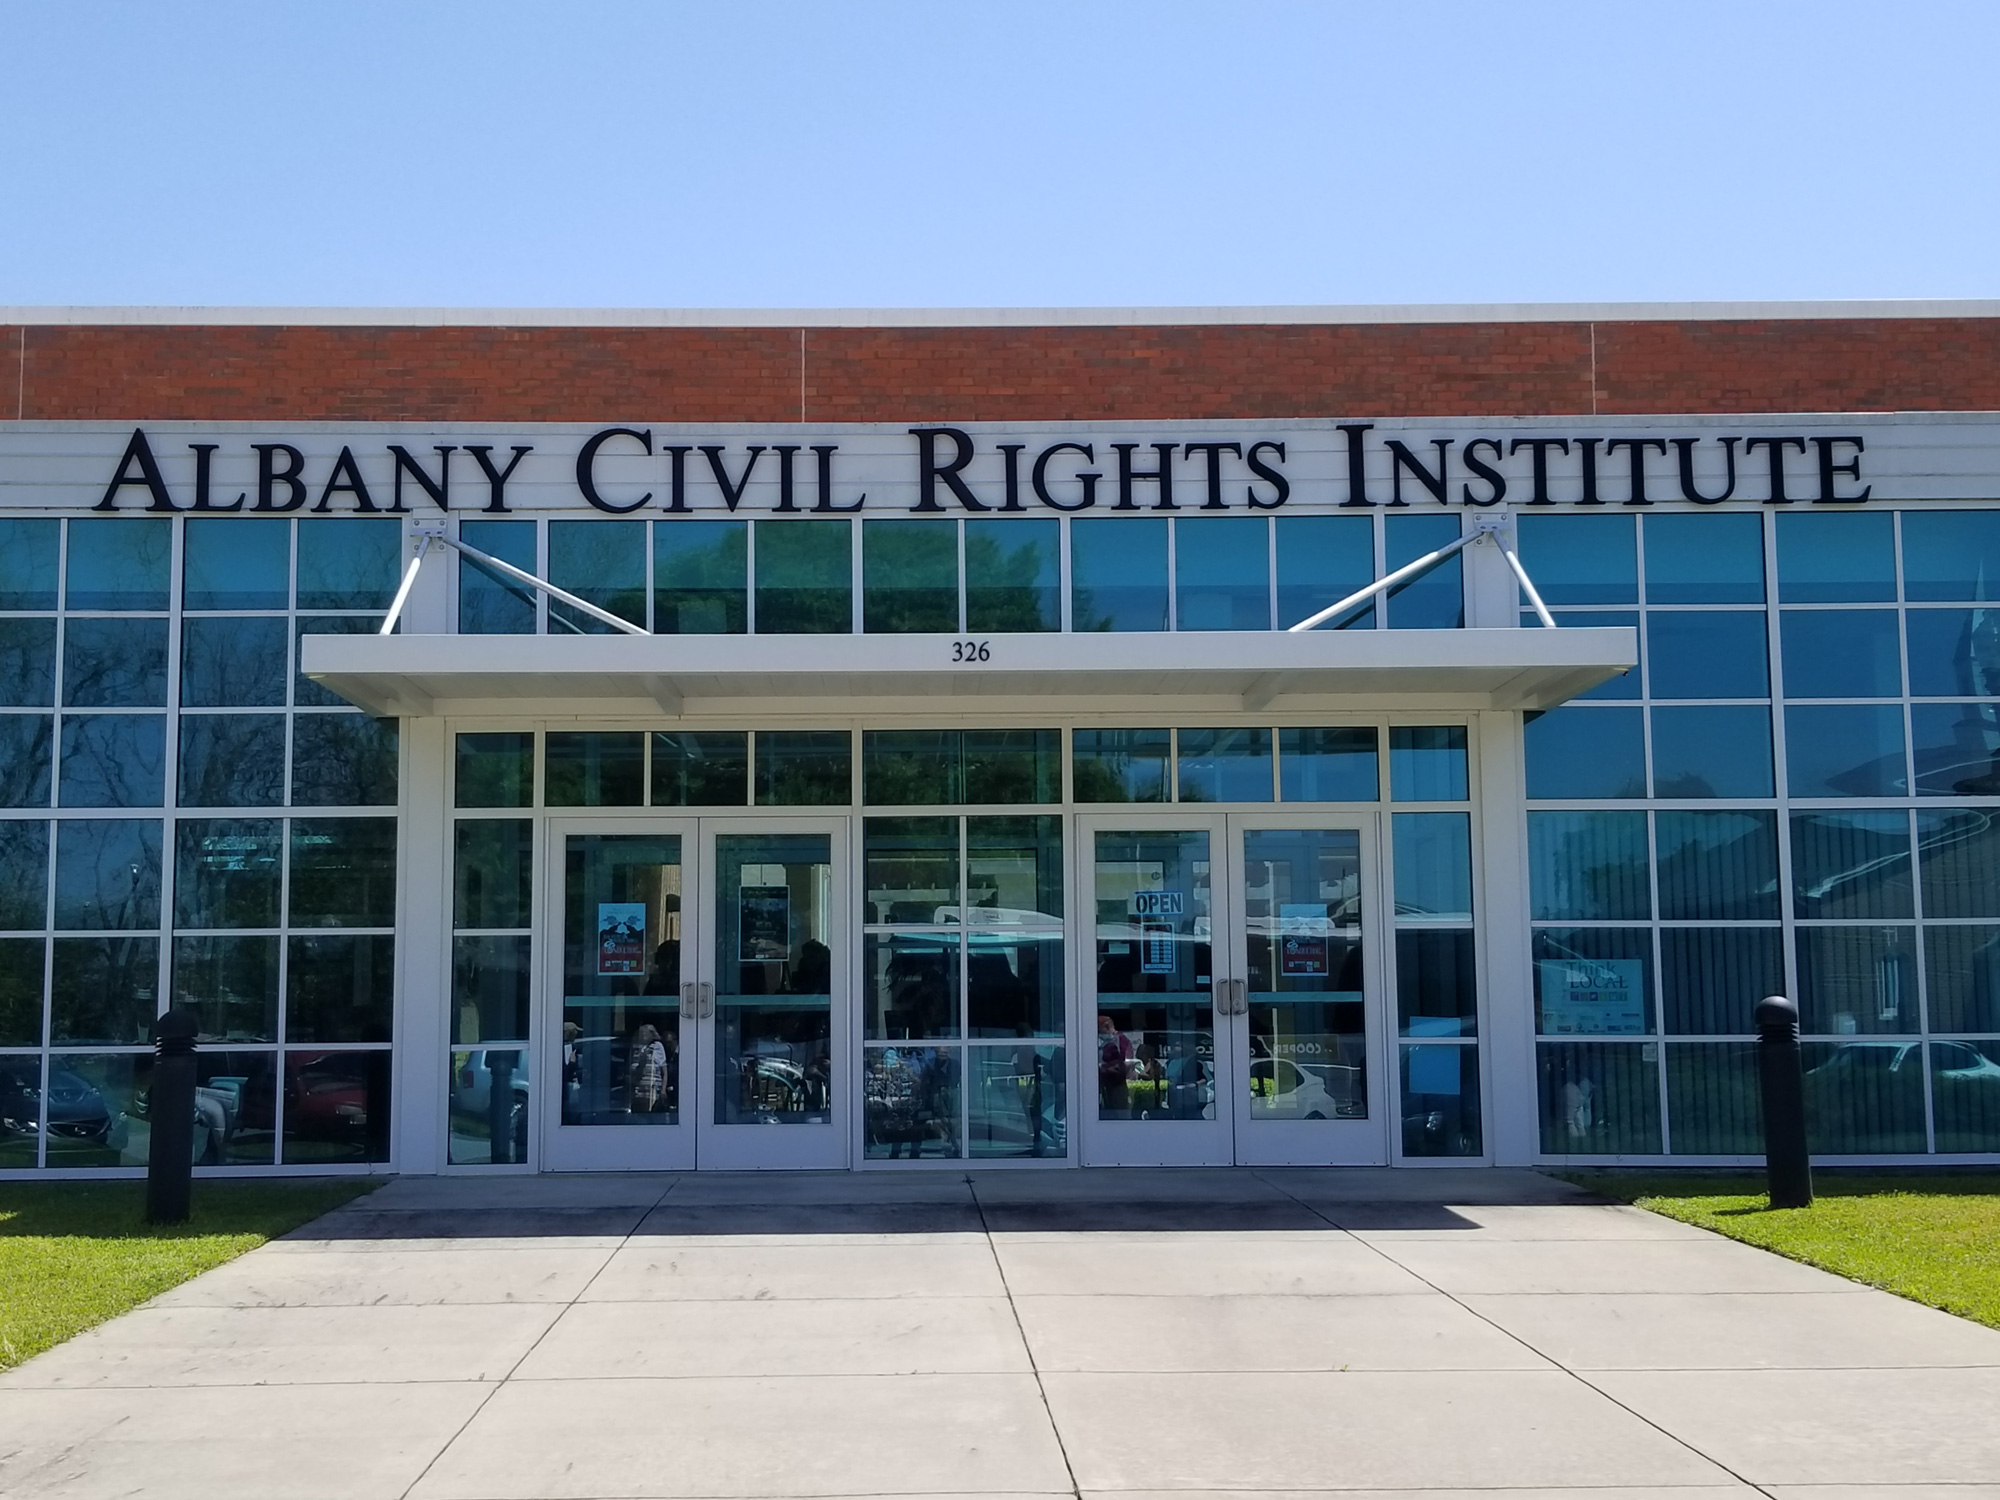 Albany Civil Rights Institute. Photo by Kalin Thomas